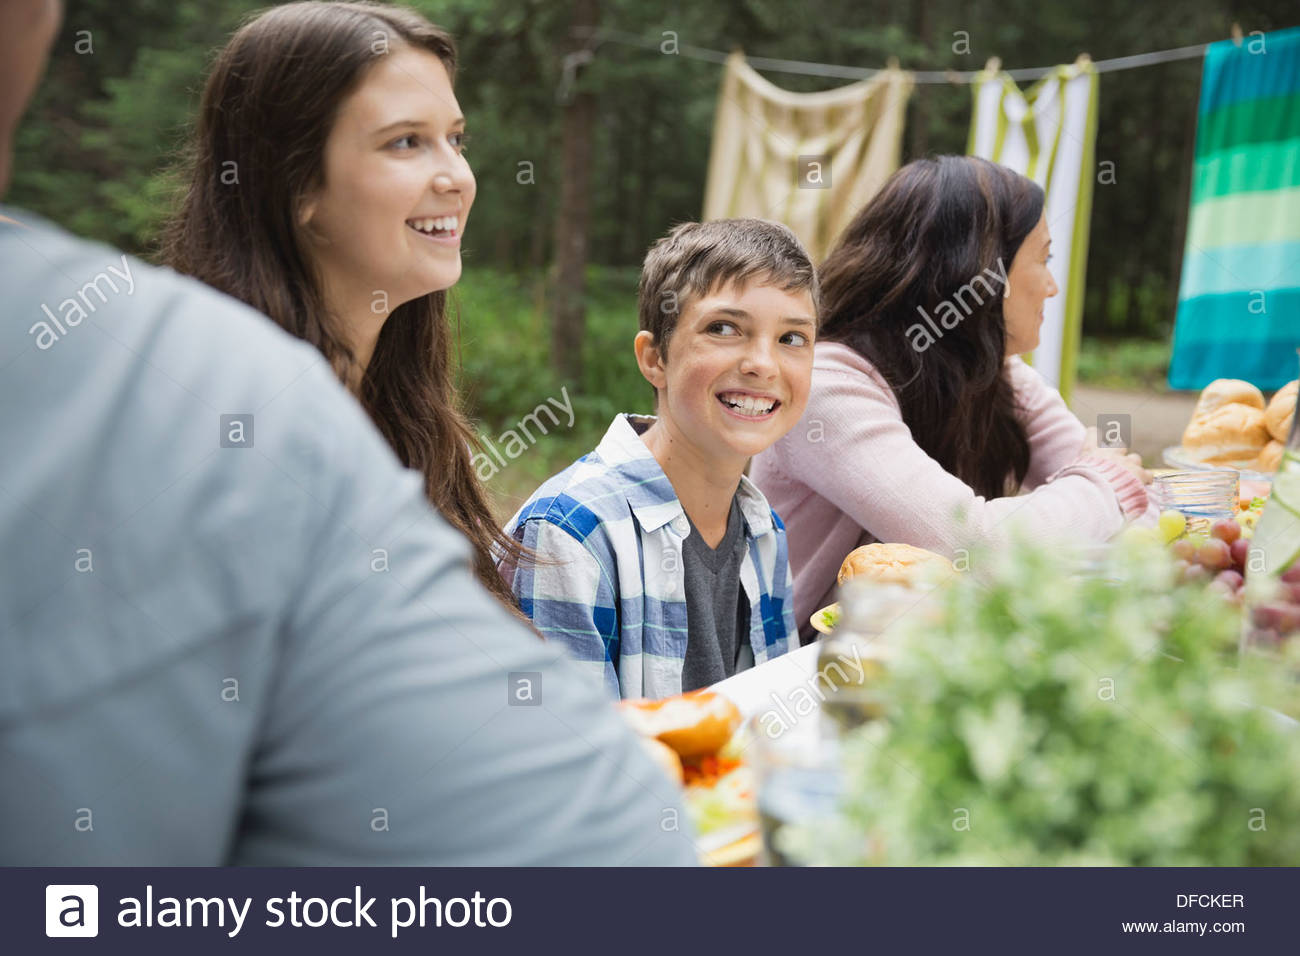 Cheerful boy having food with family at campsite Stock Photo